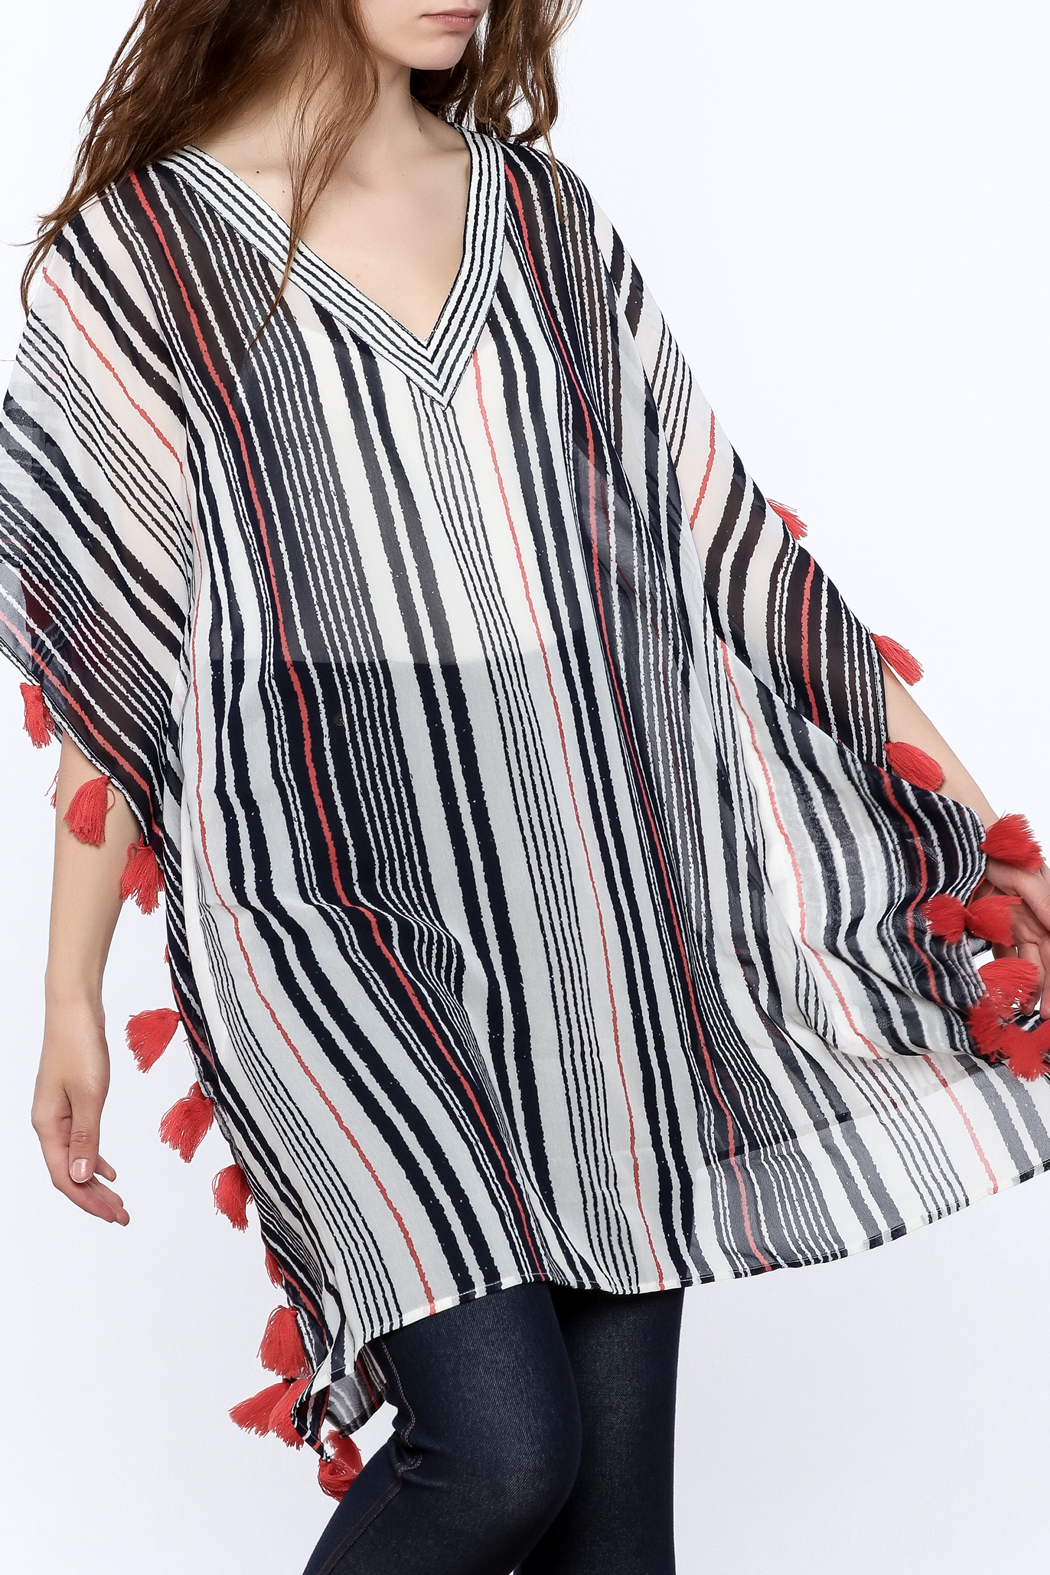 America & Beyond Striped Tasseled Kimono - Main Image